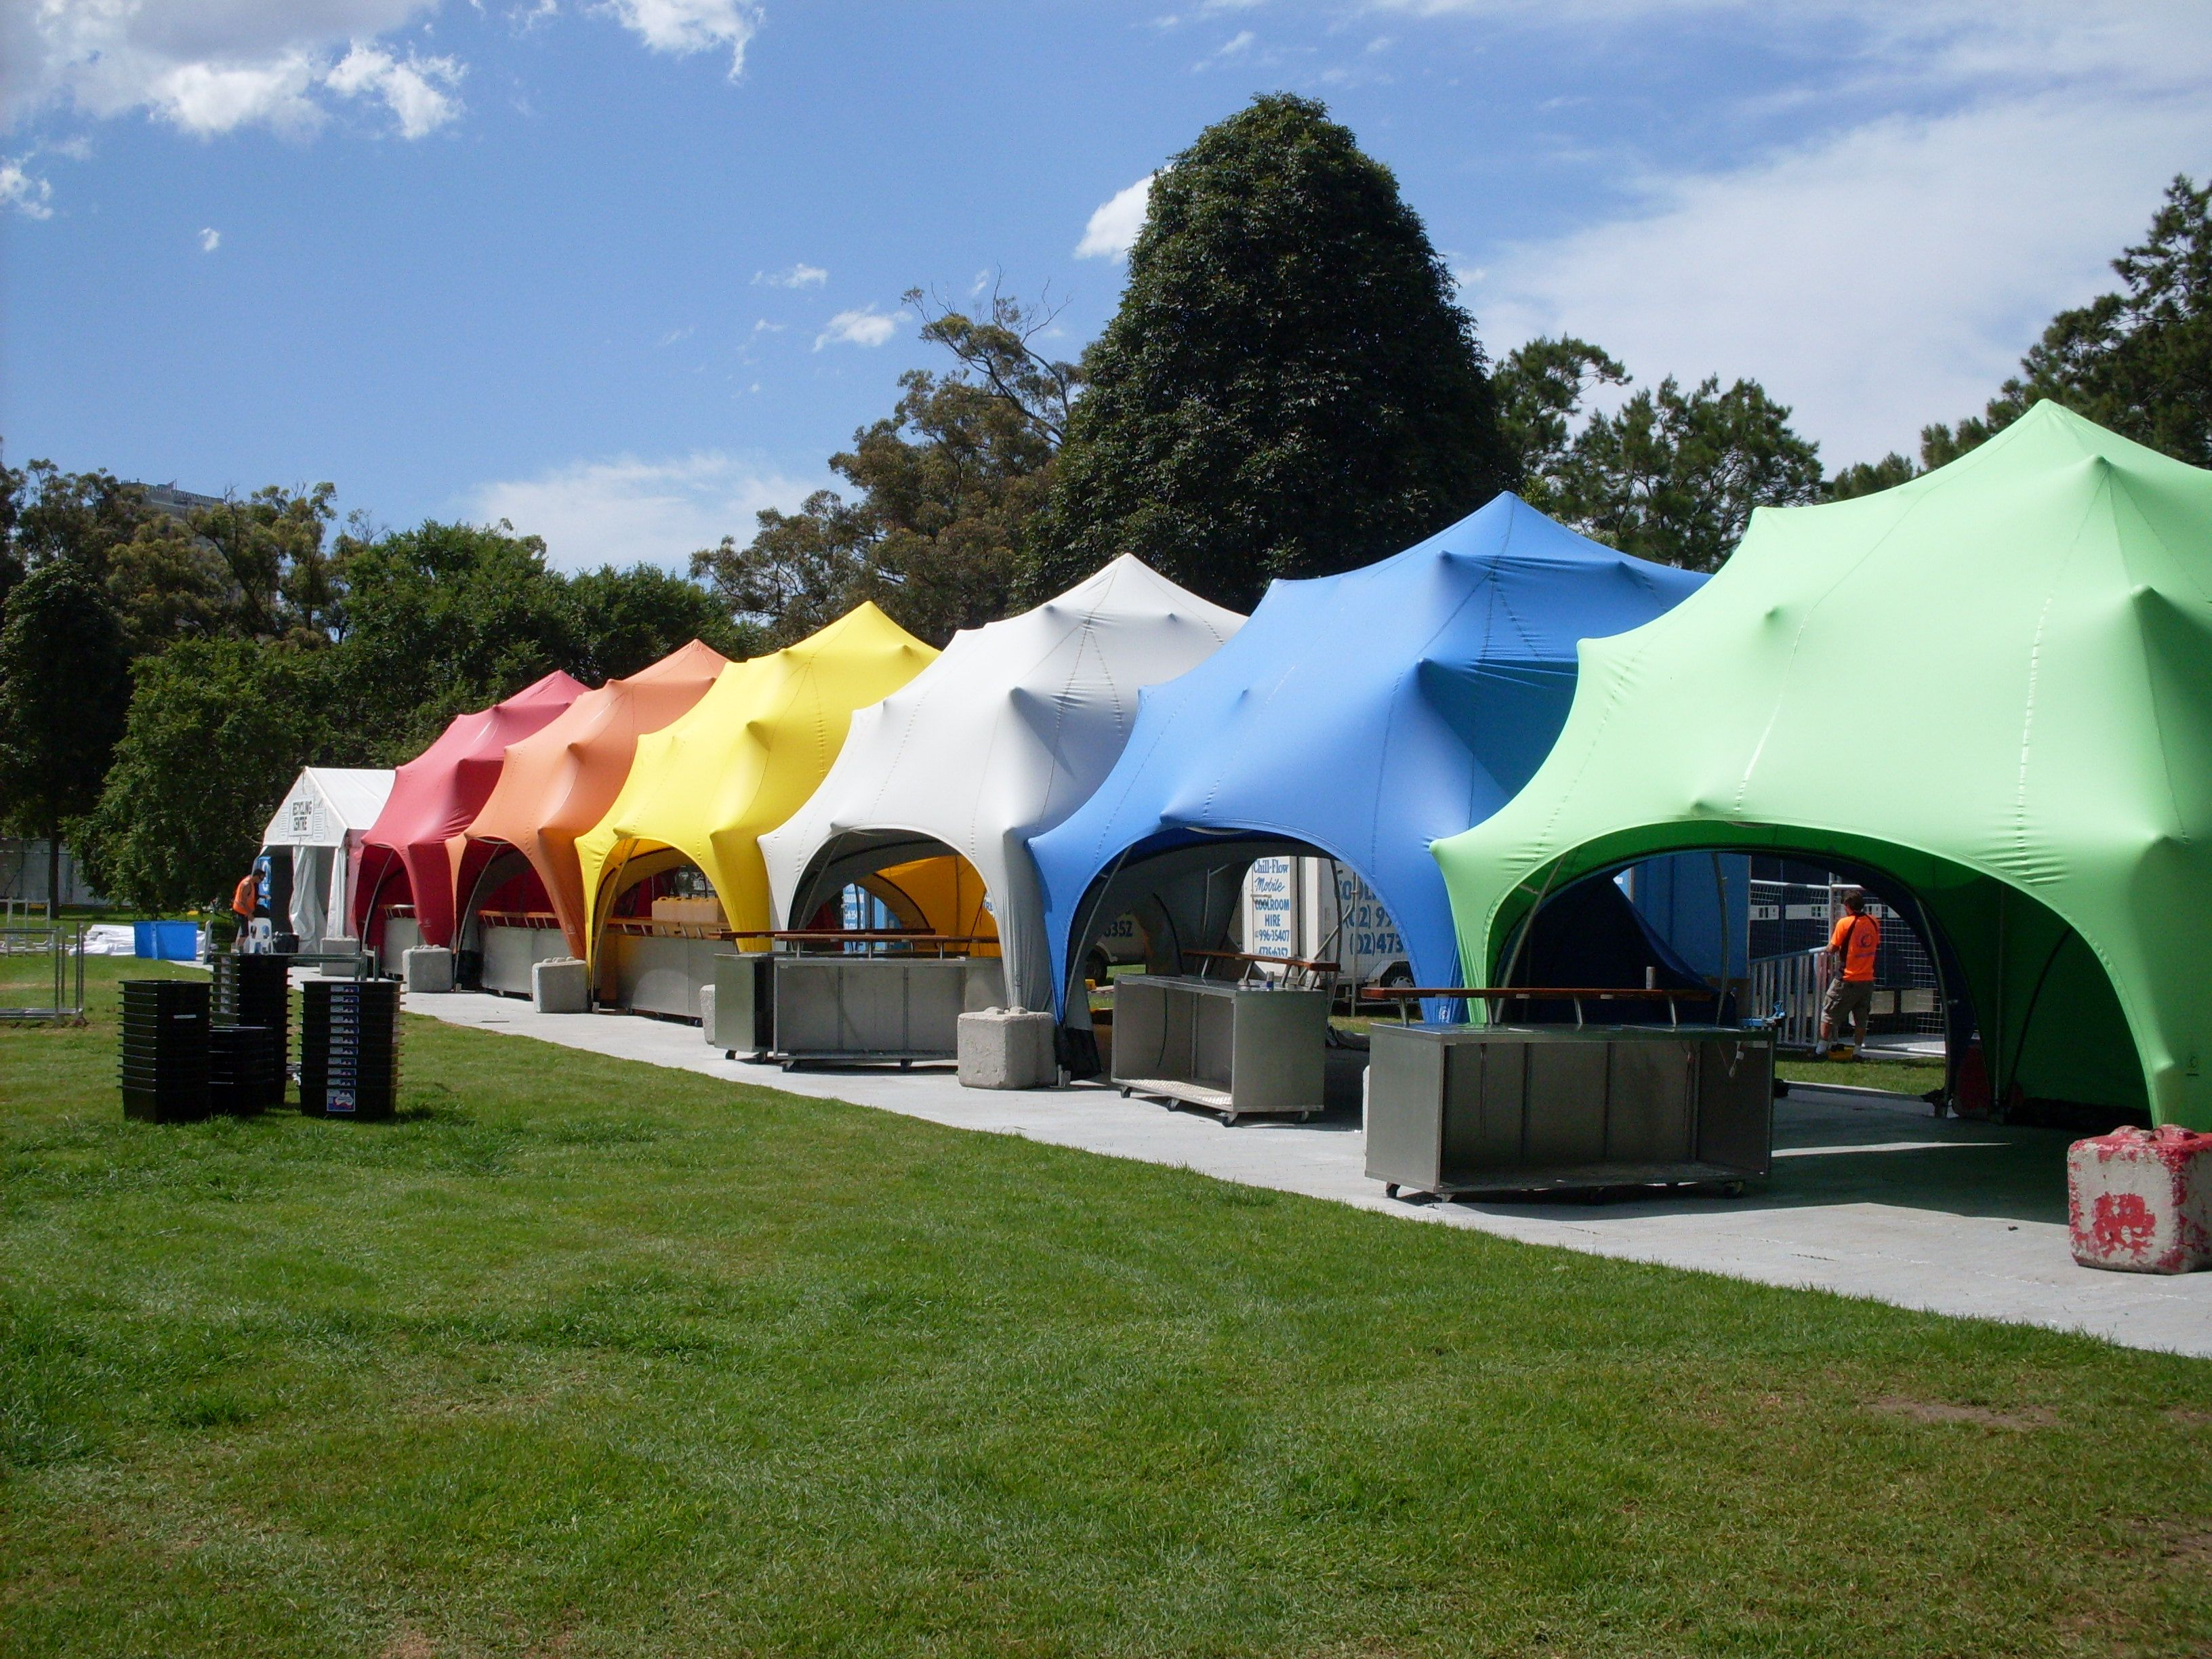 Festival and event tents fully brandable...and fun! & Festival and event tents fully brandable...and fun! | Stretch ...